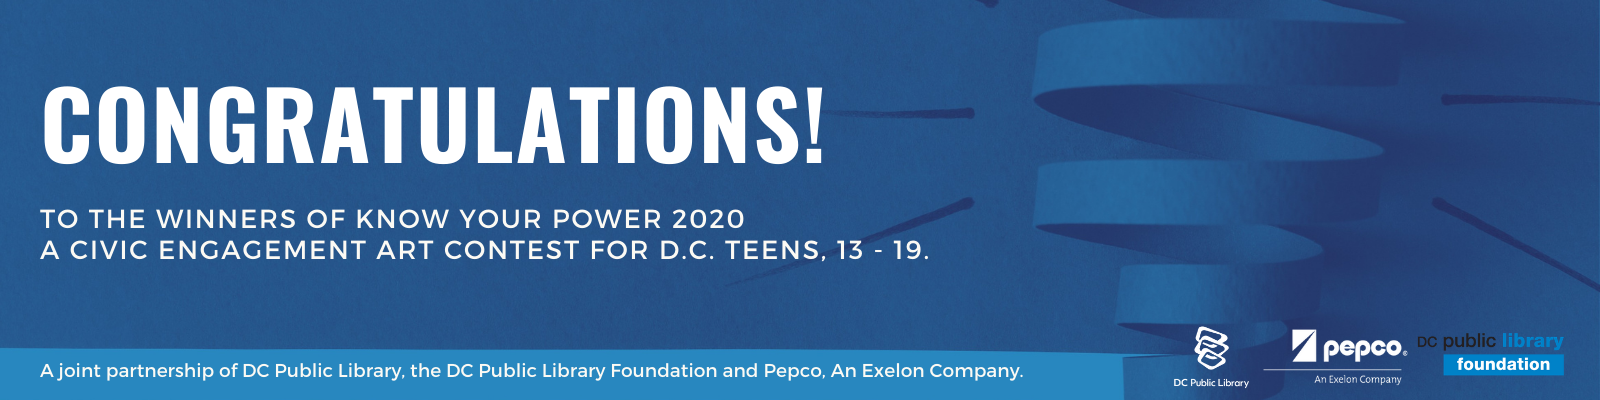 Congratulations to the winners of the Know Your Power Teen Arts Contest. A joint partnership of DC Public Library, the DC Public Library Foundation and Pepco.